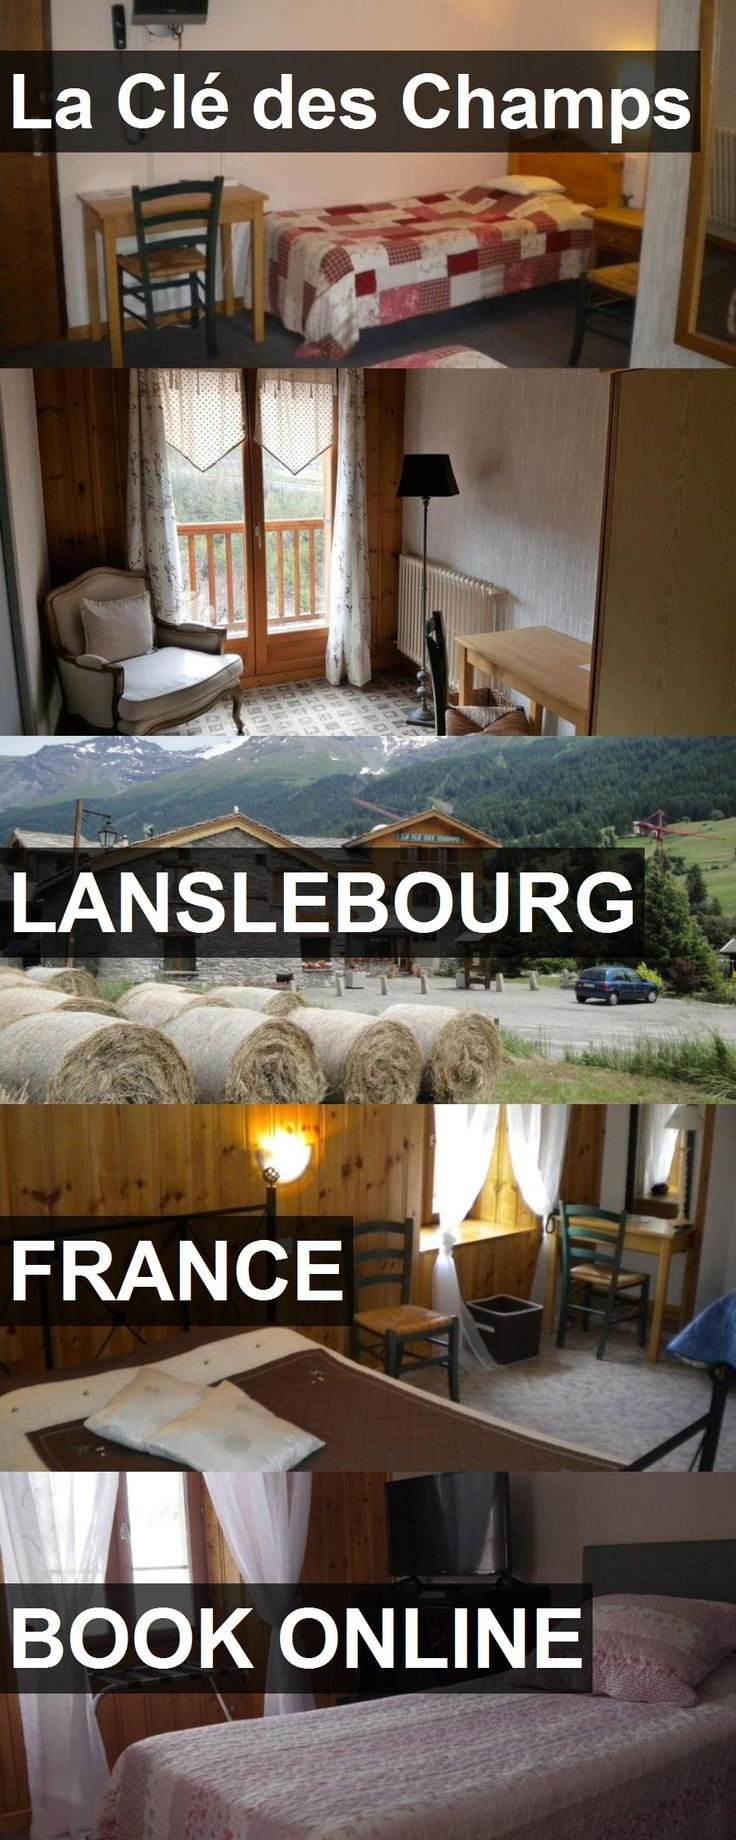 Hotel La Clé des Champs in Lanslebourg, France. For more information, photos, reviews and best prices please follow the link. #France #Lanslebourg #travel #vacation #hotel